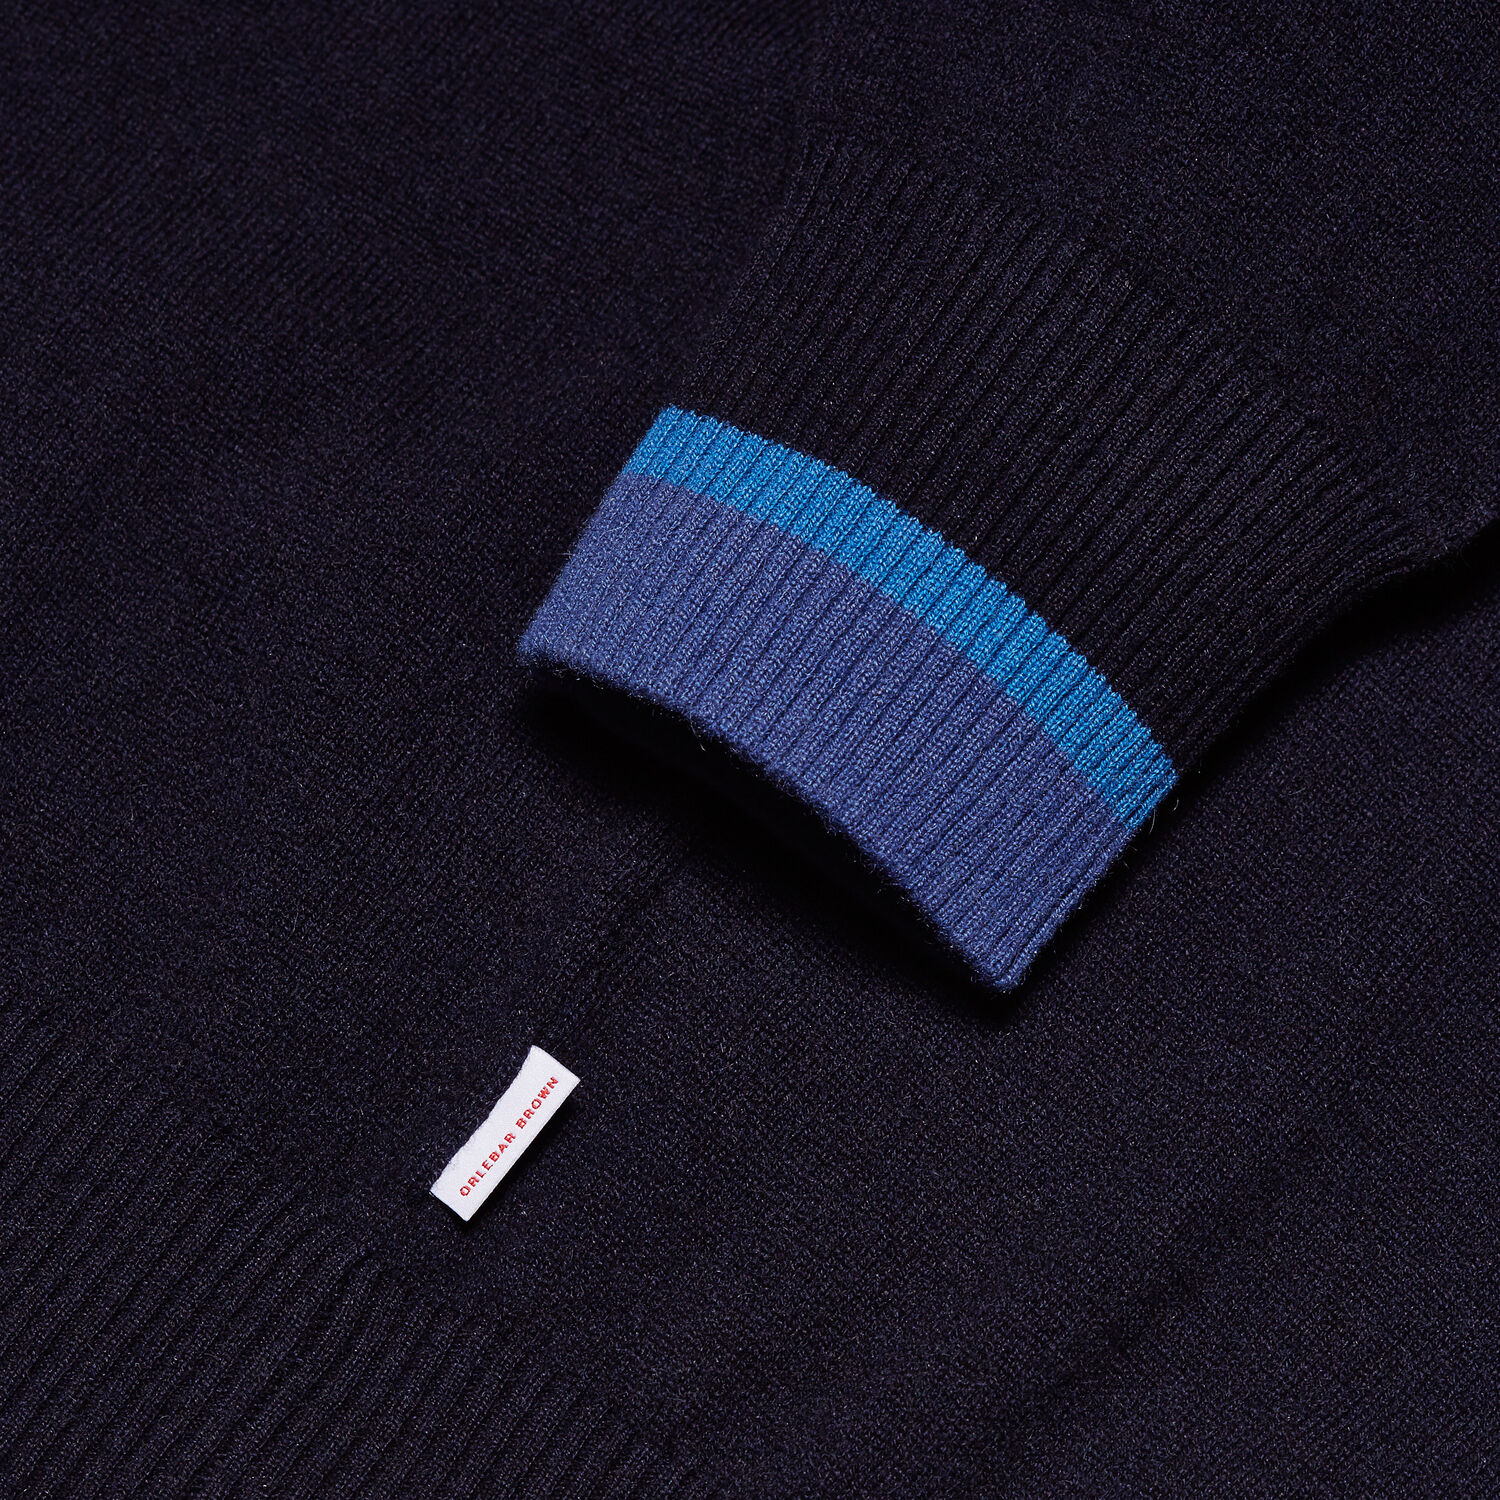 Orlebar Brown Ethan Cashmere NAVY/BUTTERFLY BLUE